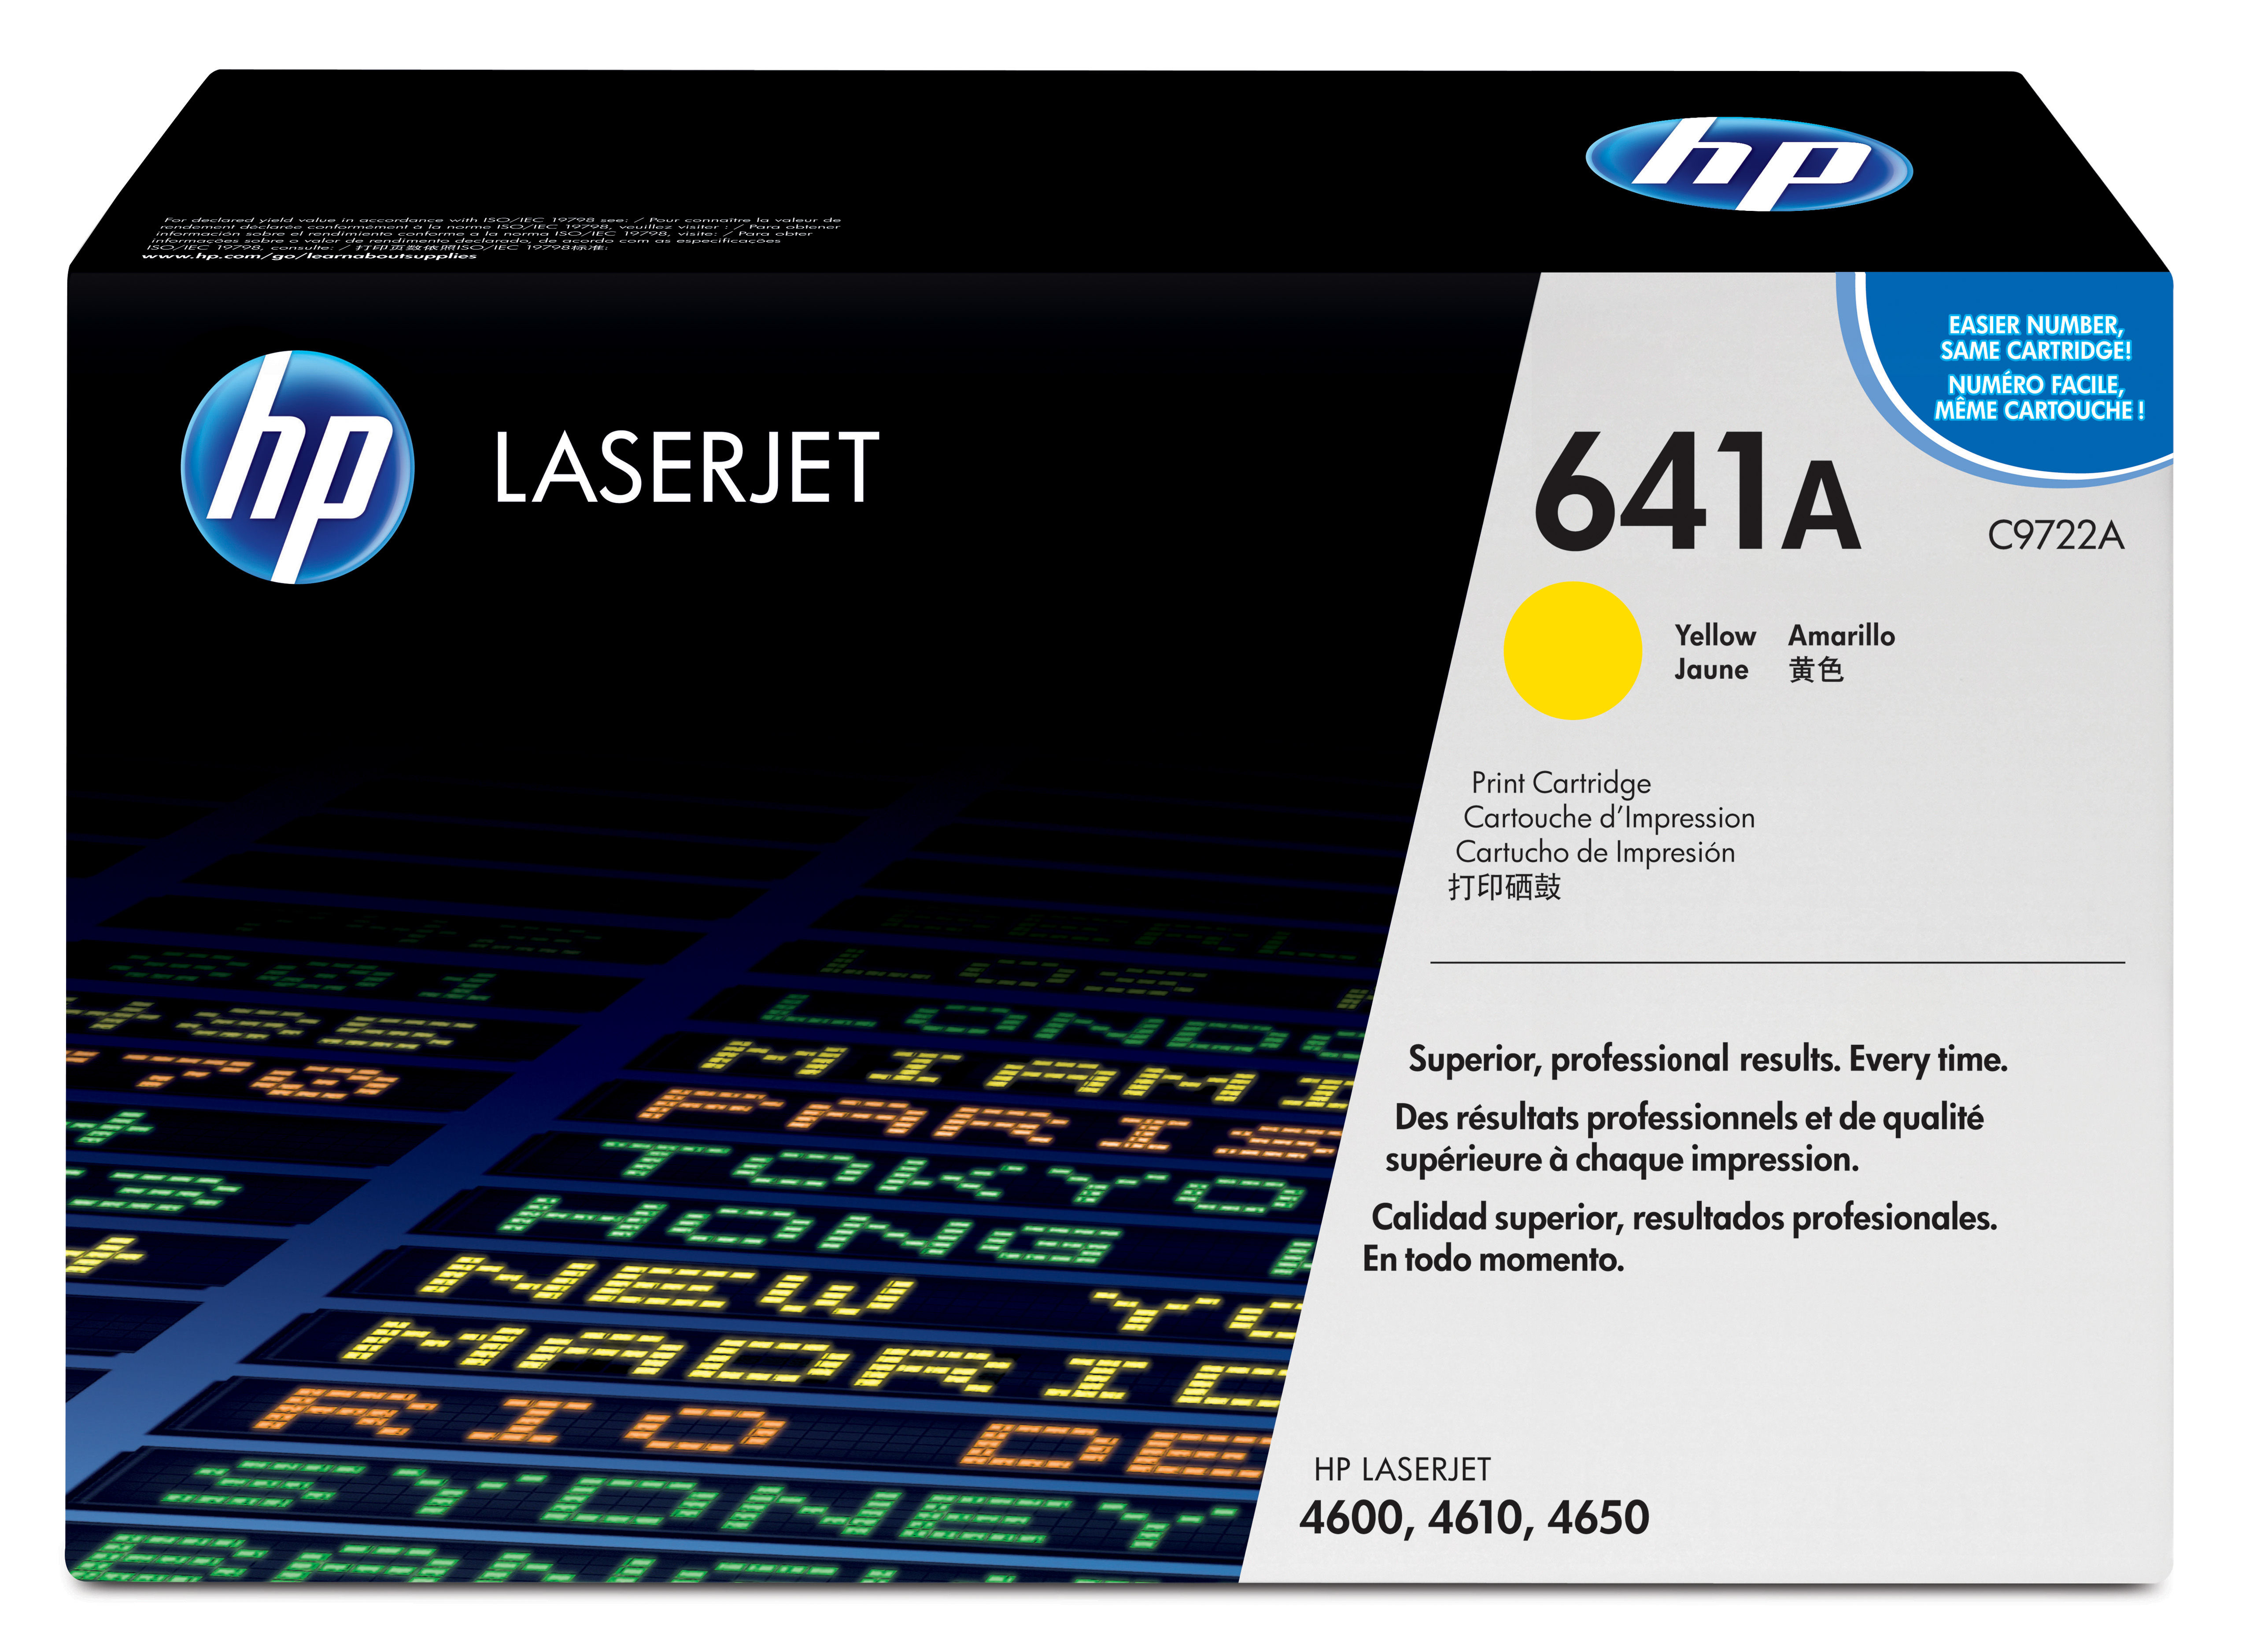 Remanufactured HP C9722A Toner Cartridge Yellow 8K C9722A - rem01